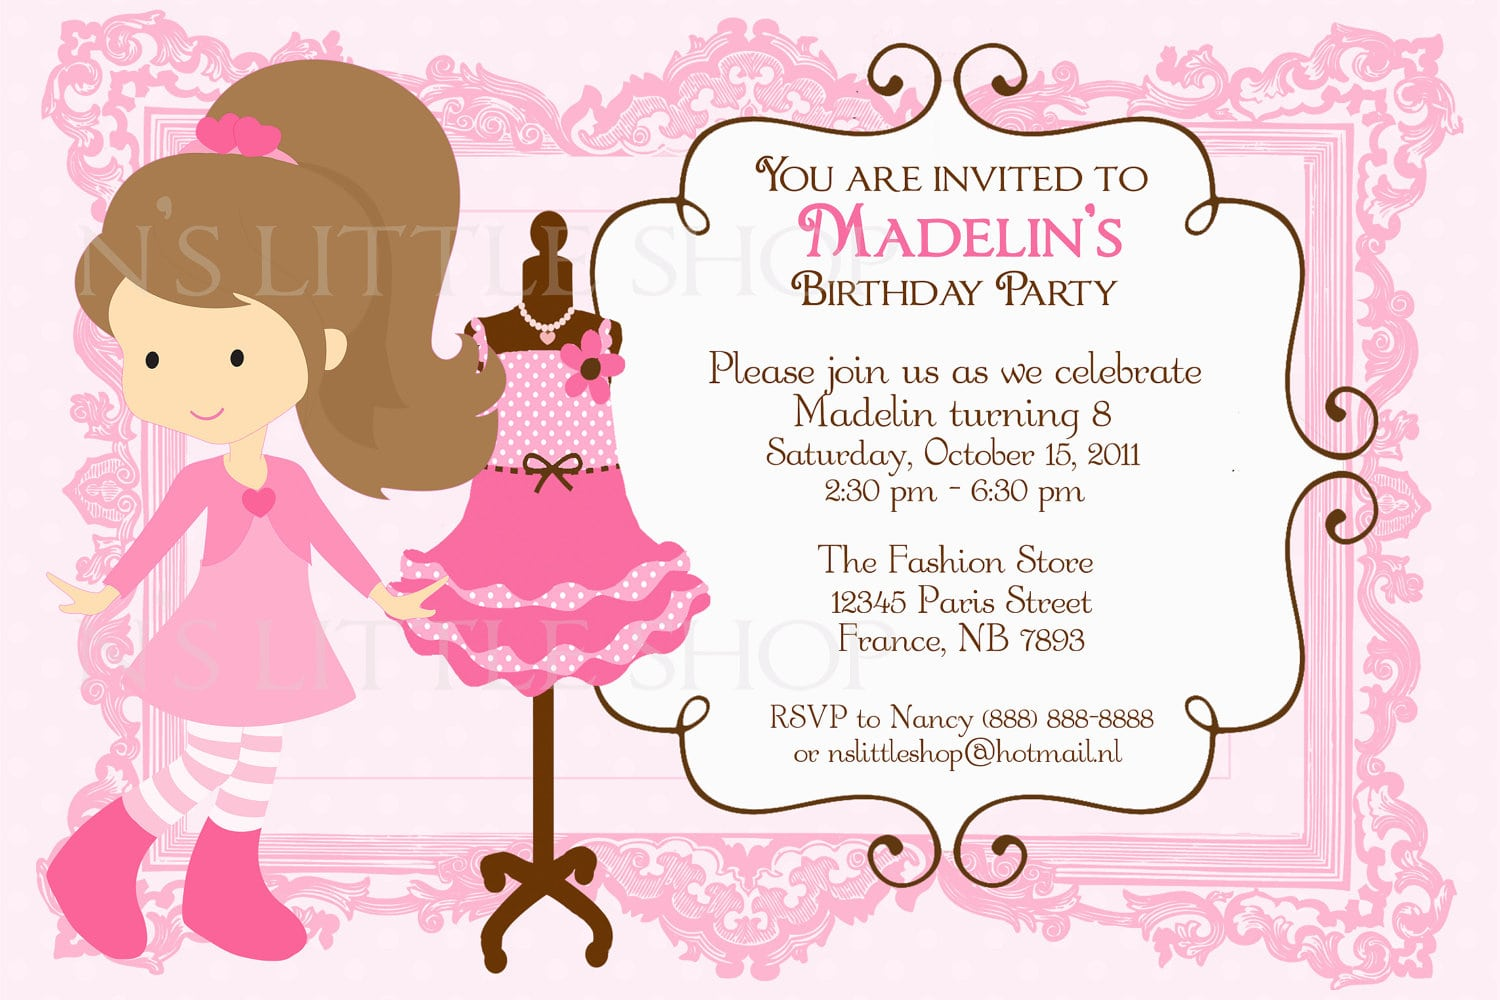 8 Brave Ladies Party Invitation Message